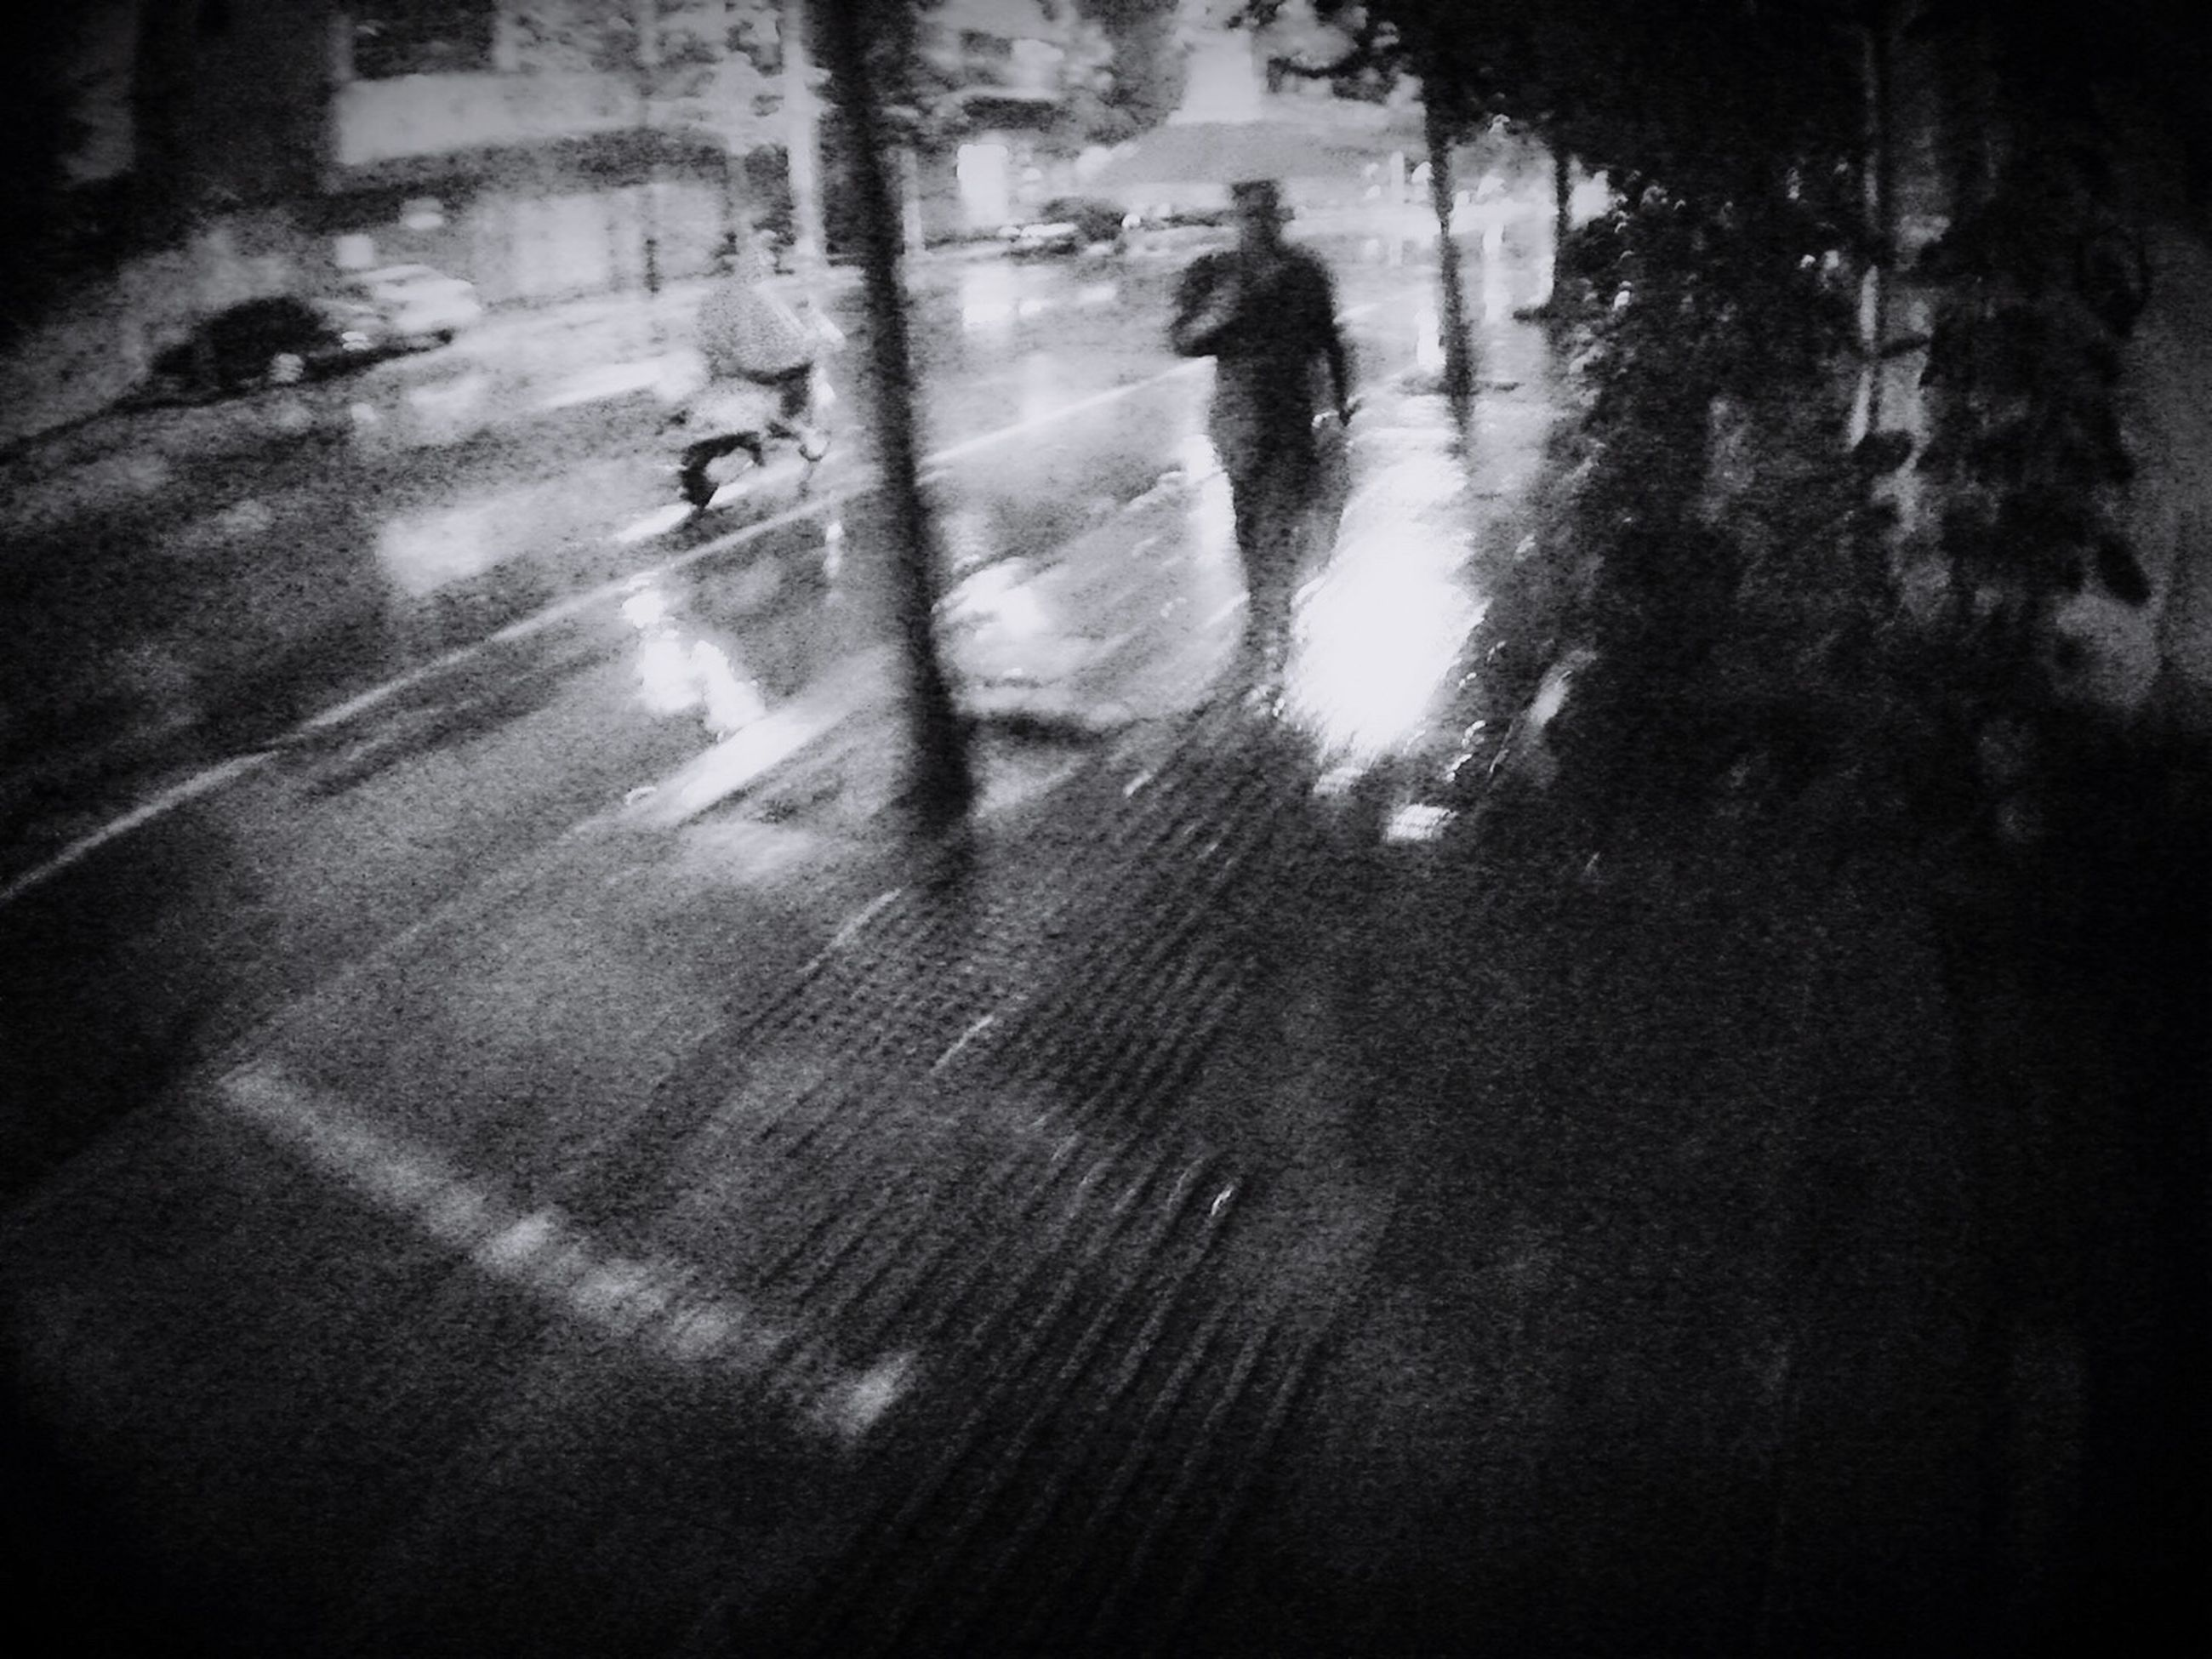 street, walking, unrecognizable person, wet, lifestyles, reflection, water, nature, day, person, outdoors